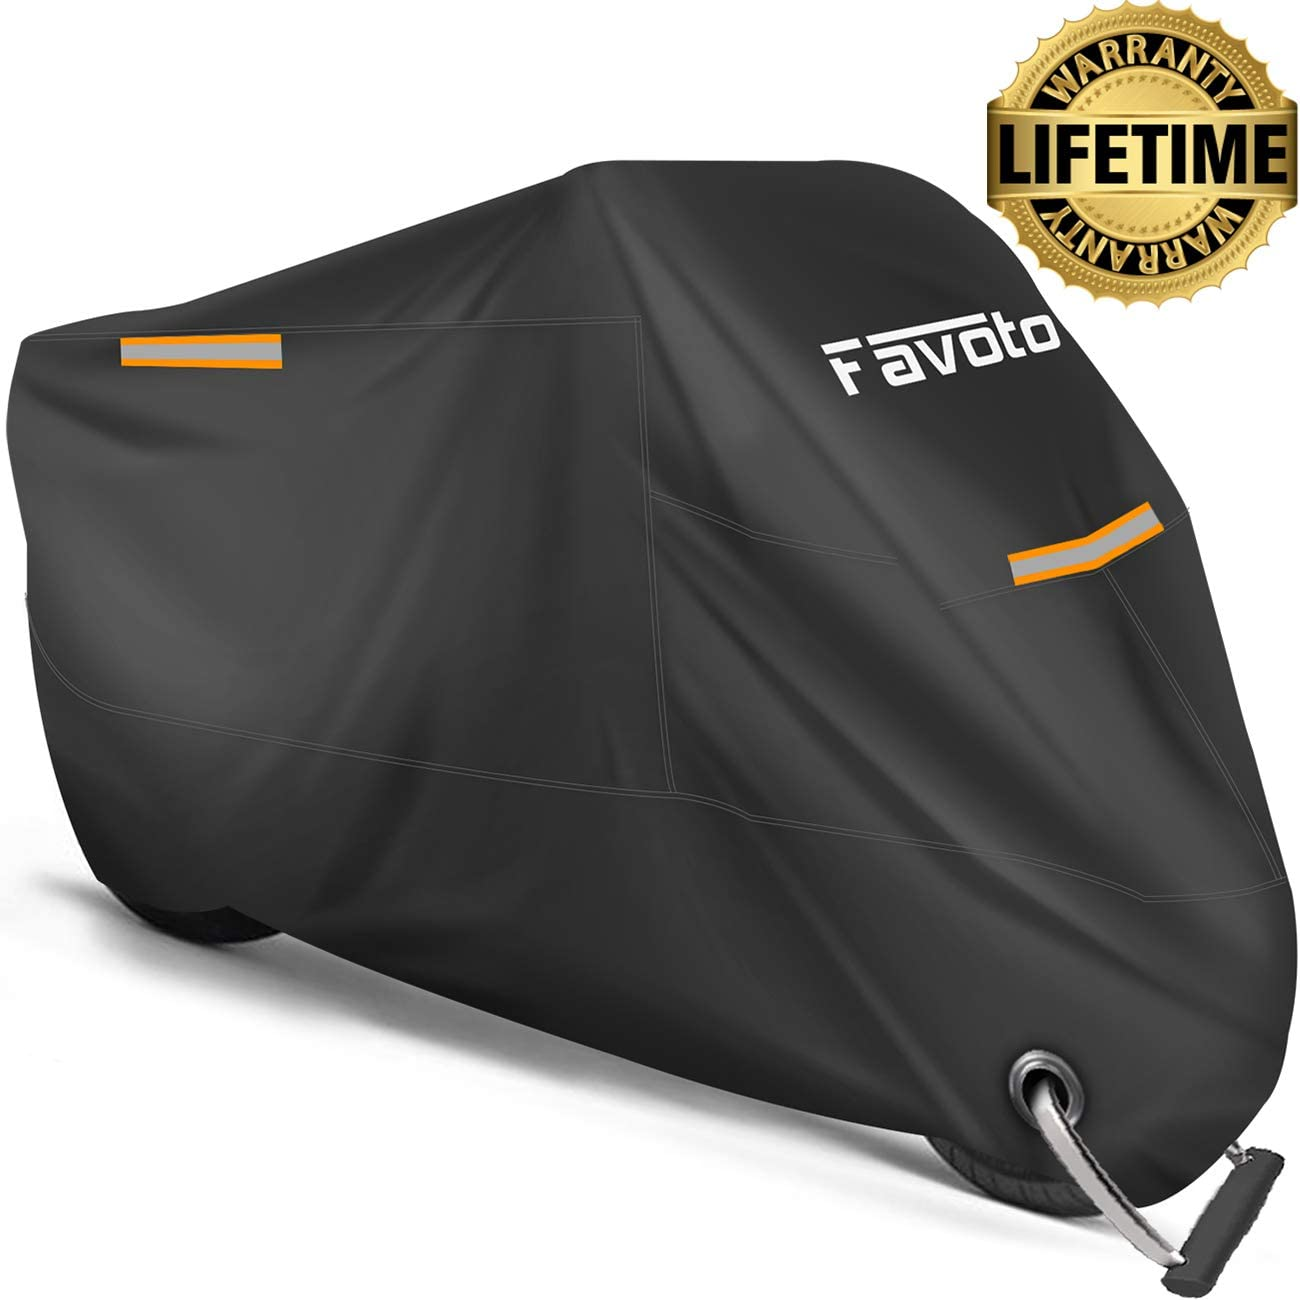 "Favoto Motorcycle Cover All Season Universal Weather Premium Quality Waterproof Sun Outdoor Protection Durable Night Reflective with Lock-Holes & Storage Bag Fits up to 96.5"" Motorcycles Vehicle Cover"